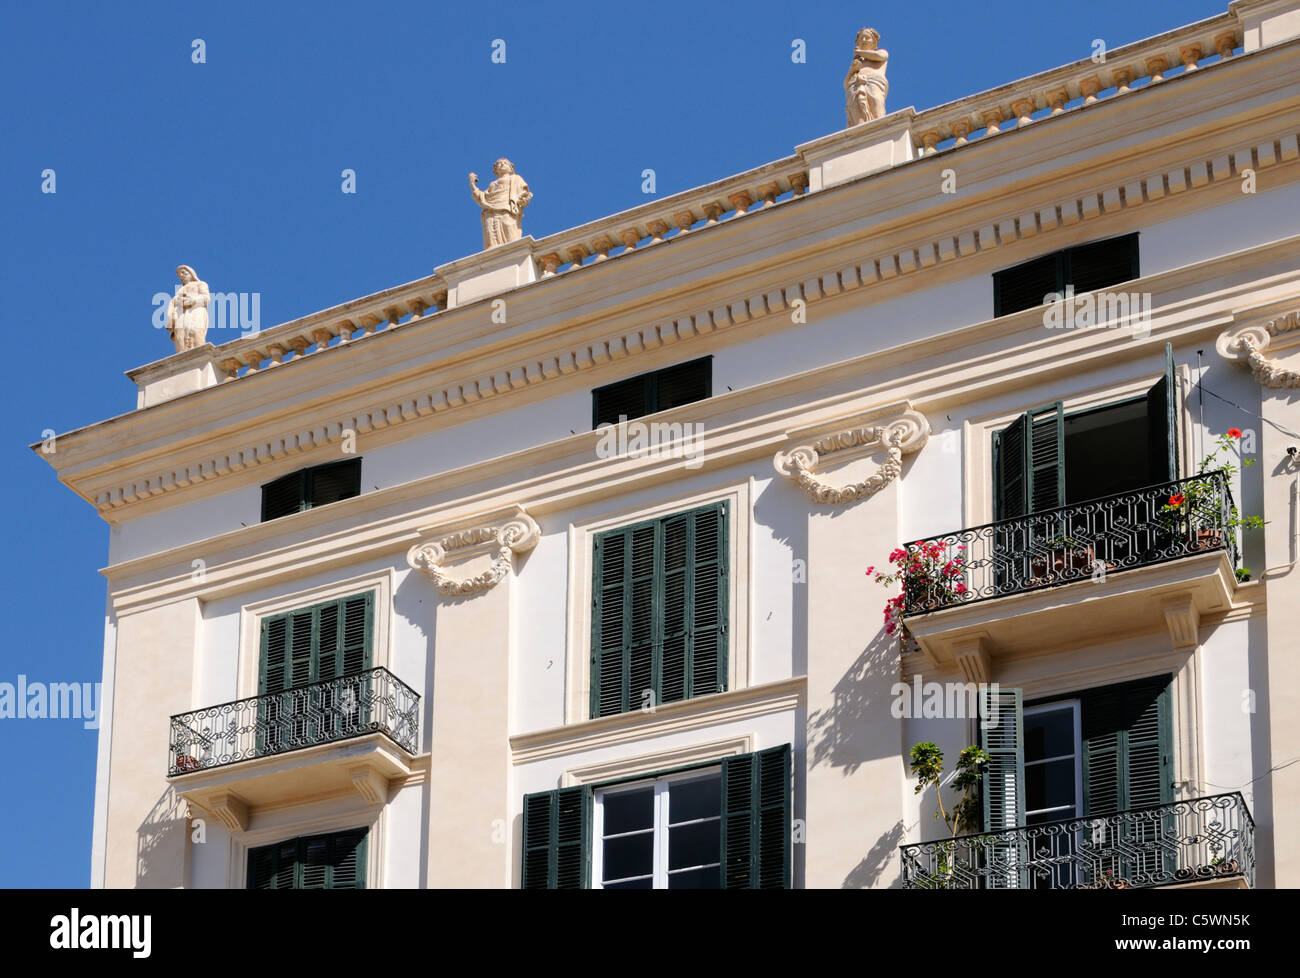 Prachtbau mit Statuen, Palma, Mallorca, Spanien, Europa. - Magnificent building with statues, Palma, Majorca, Spain, Stock Photo